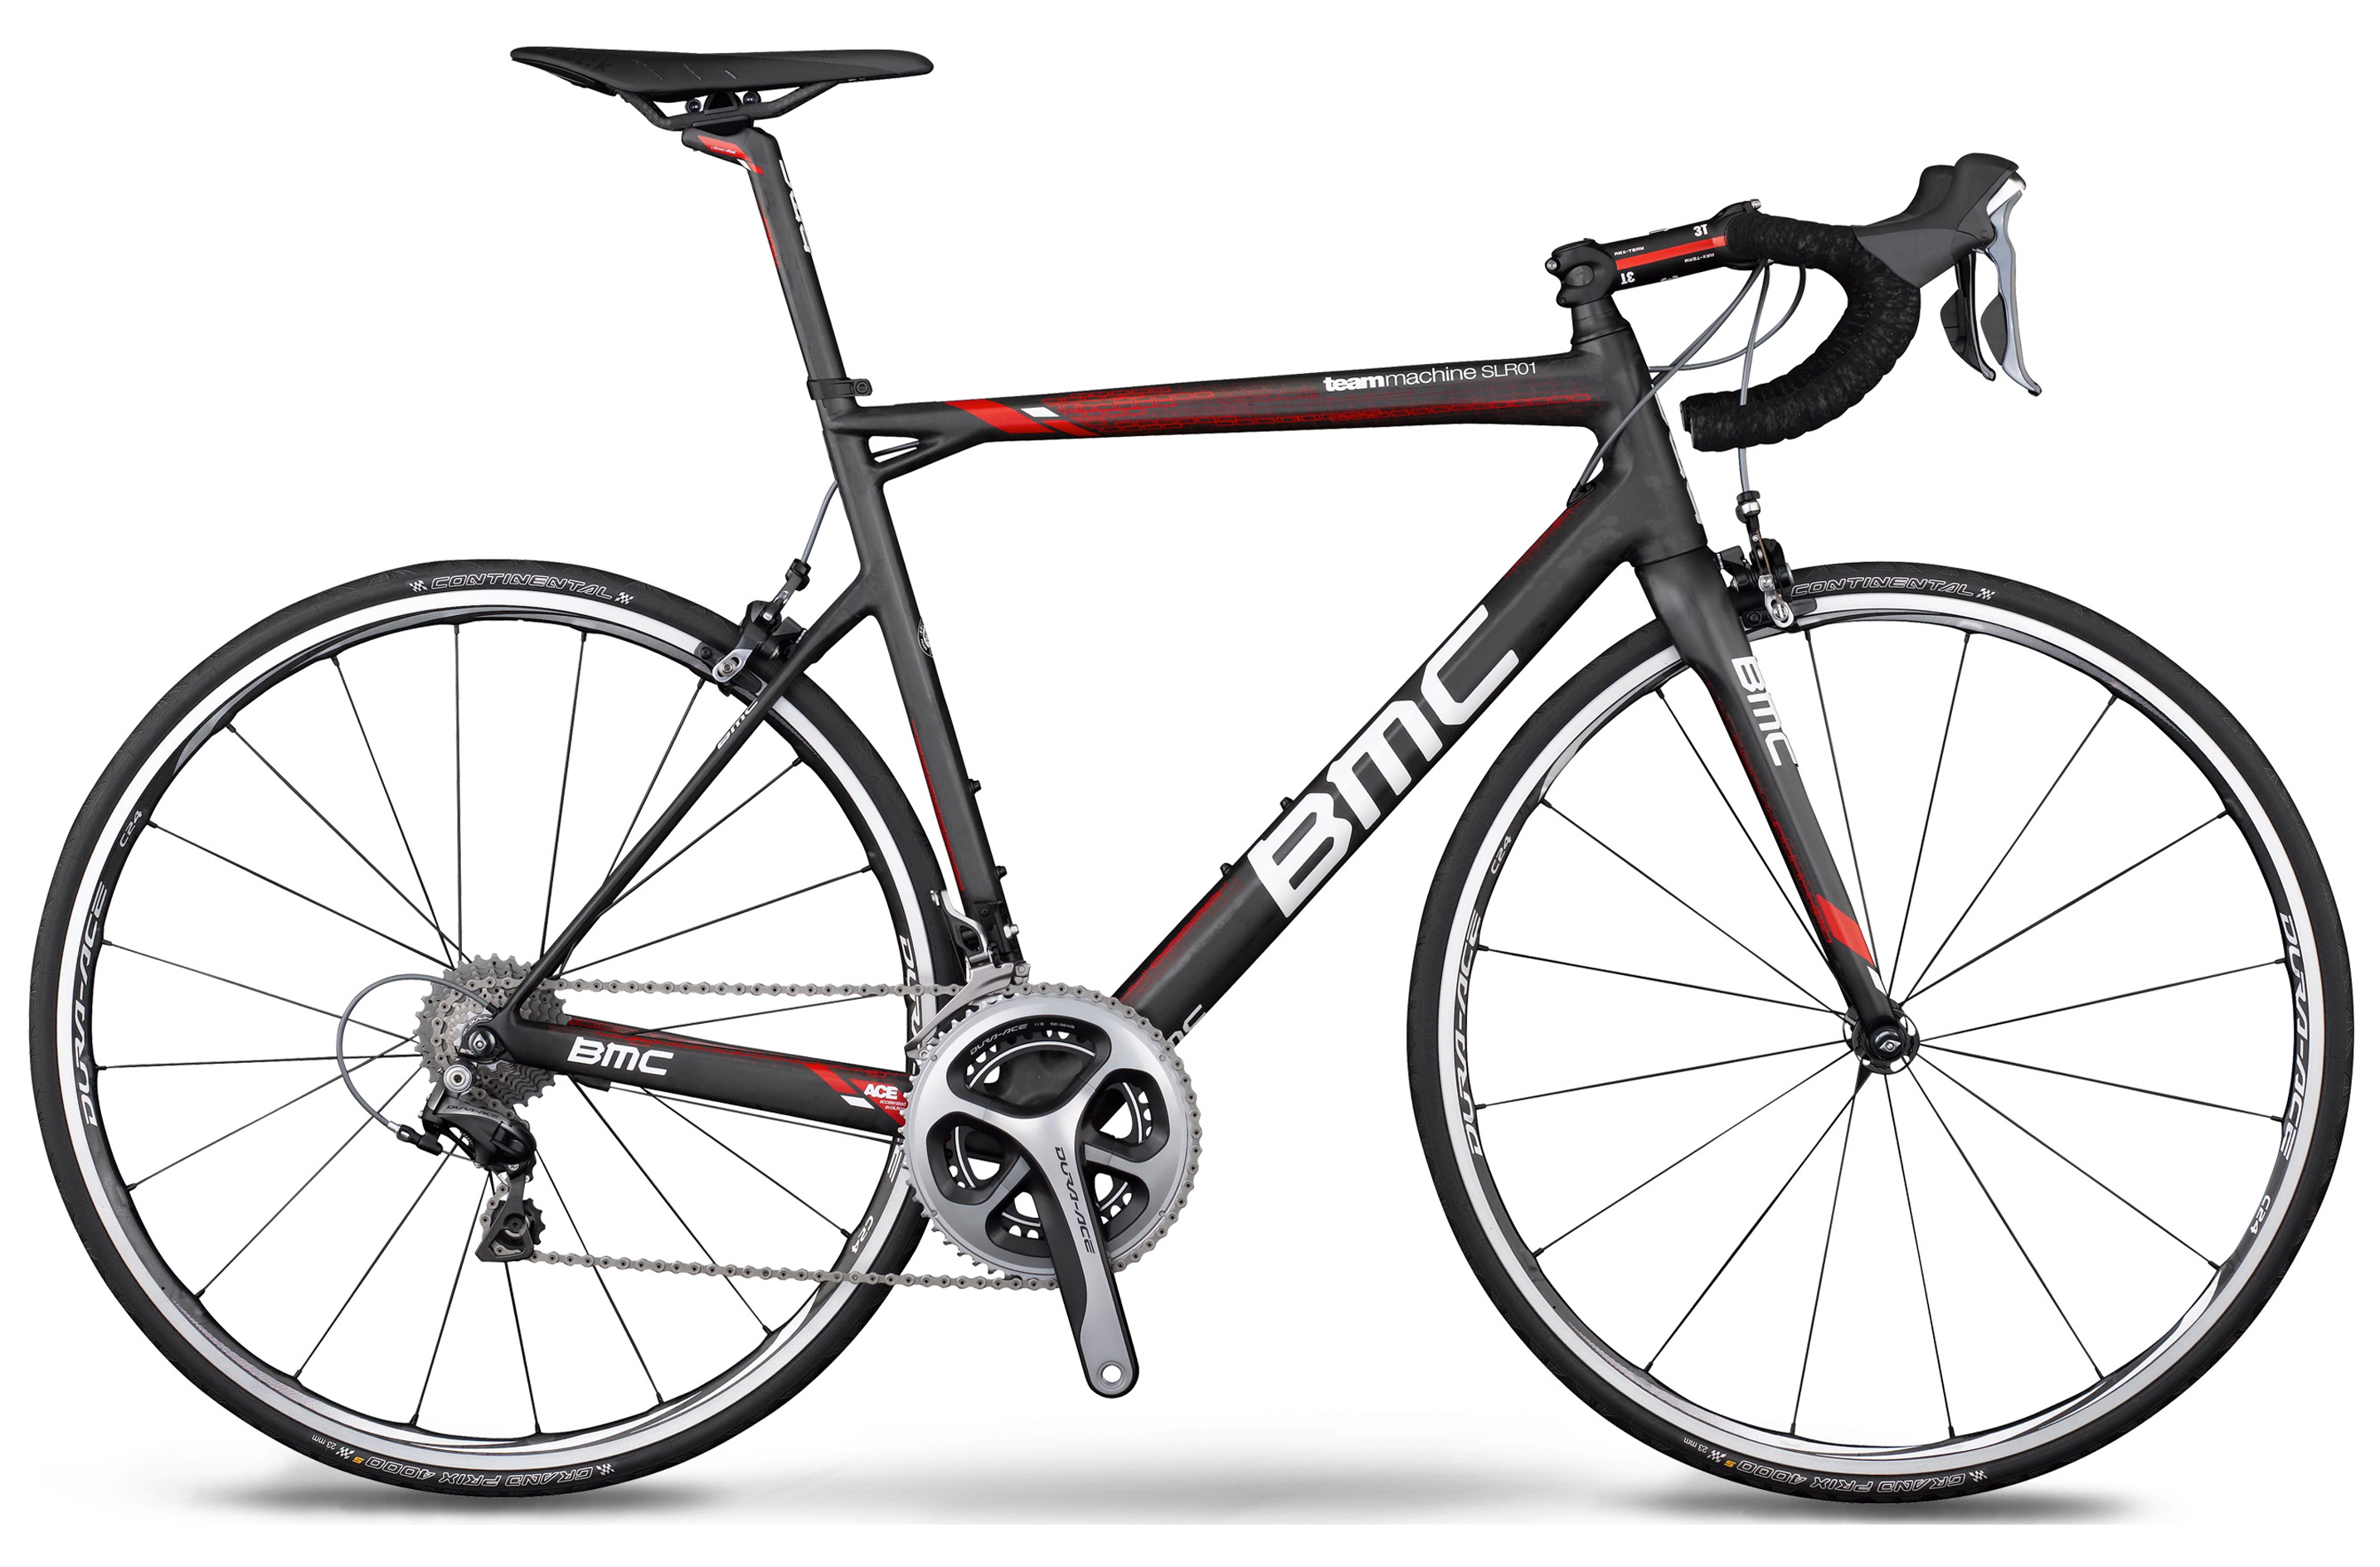 Bmc Teammachine Slr01 Dura Ace 2014 Review The Bike List